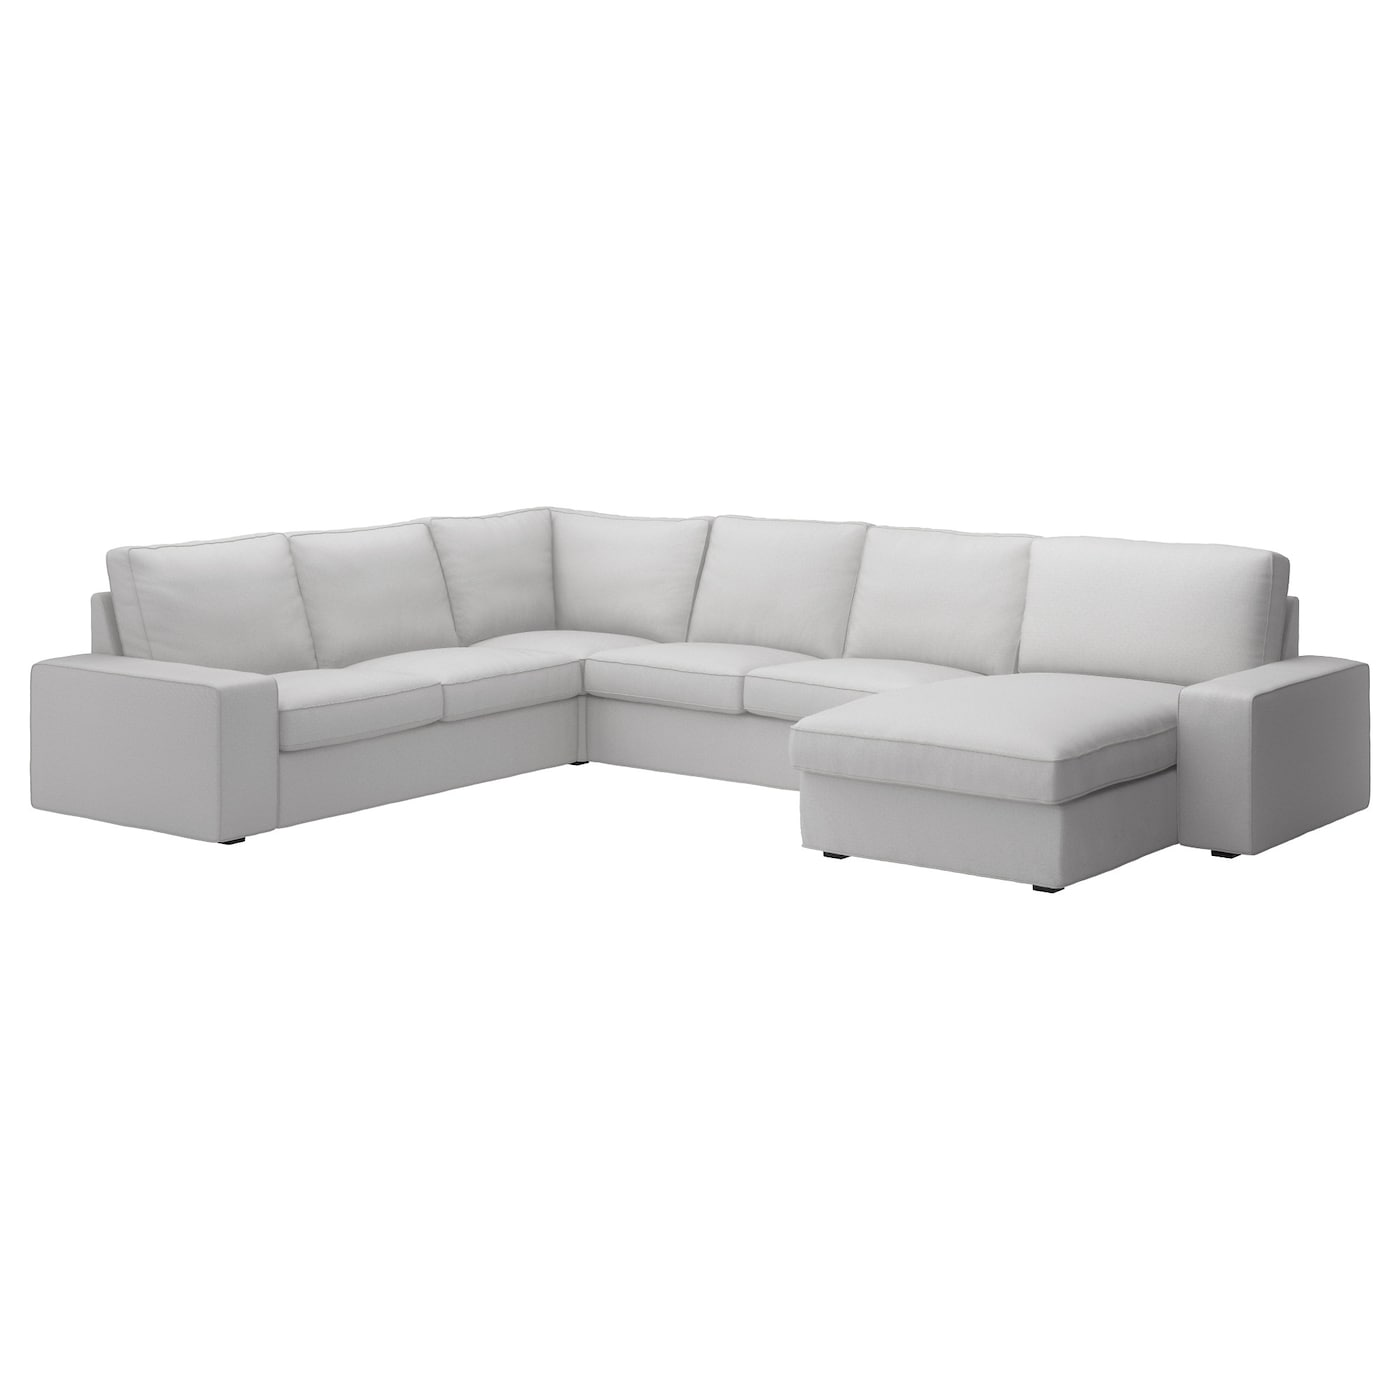 Kivik corner sofa 2 2 with chaise longue ramna light grey for Sofas rinconeras ikea